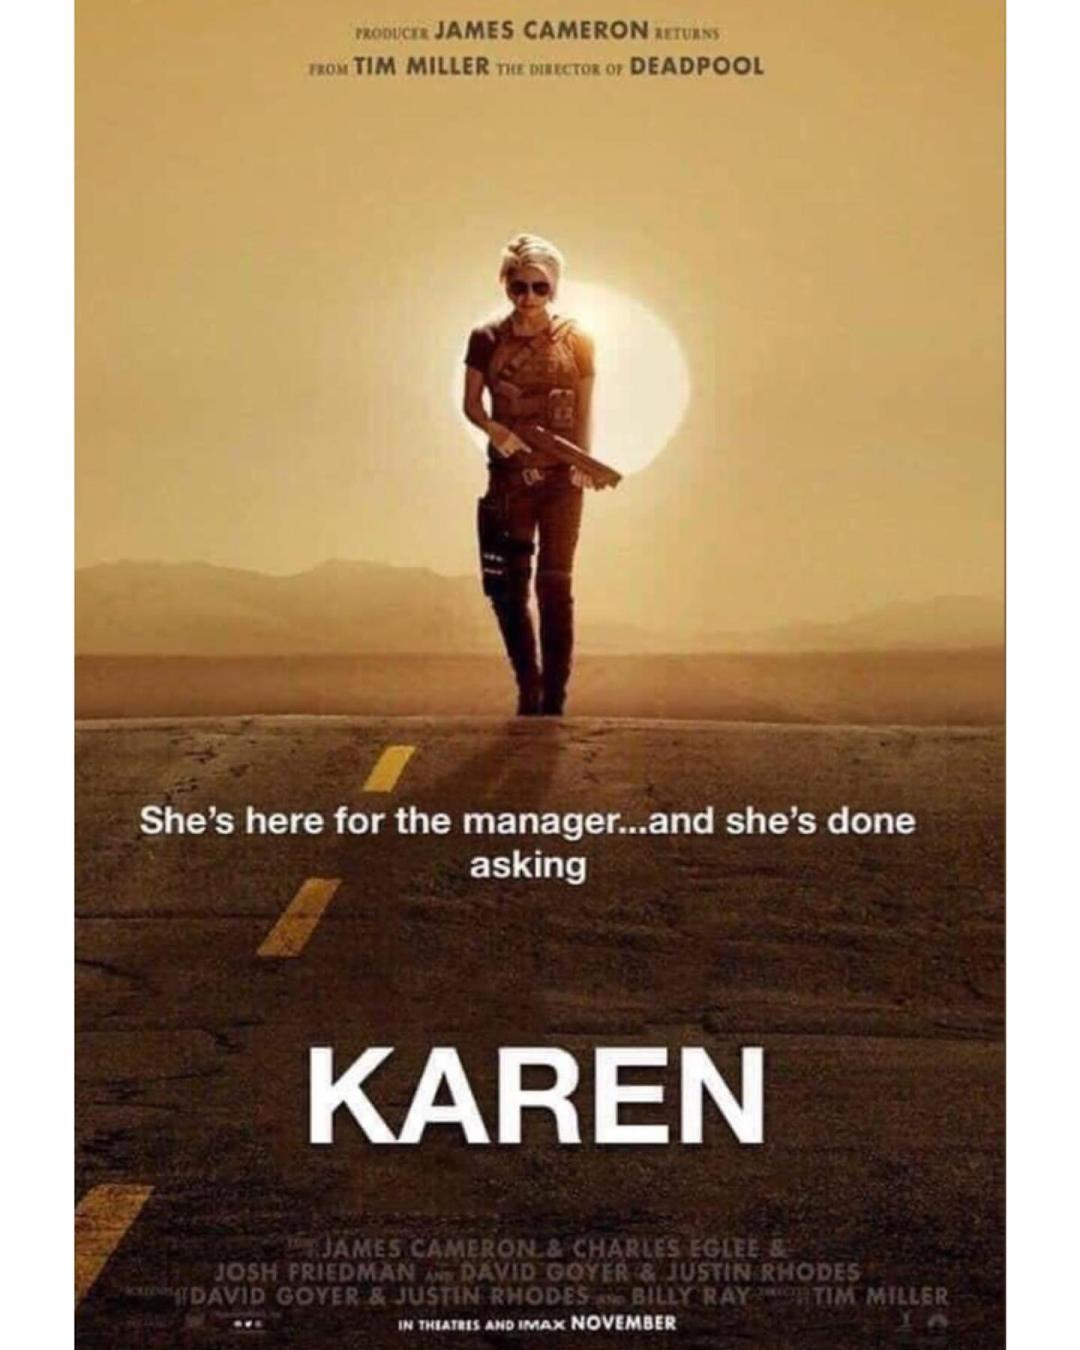 karen movie poster shes here for the manager